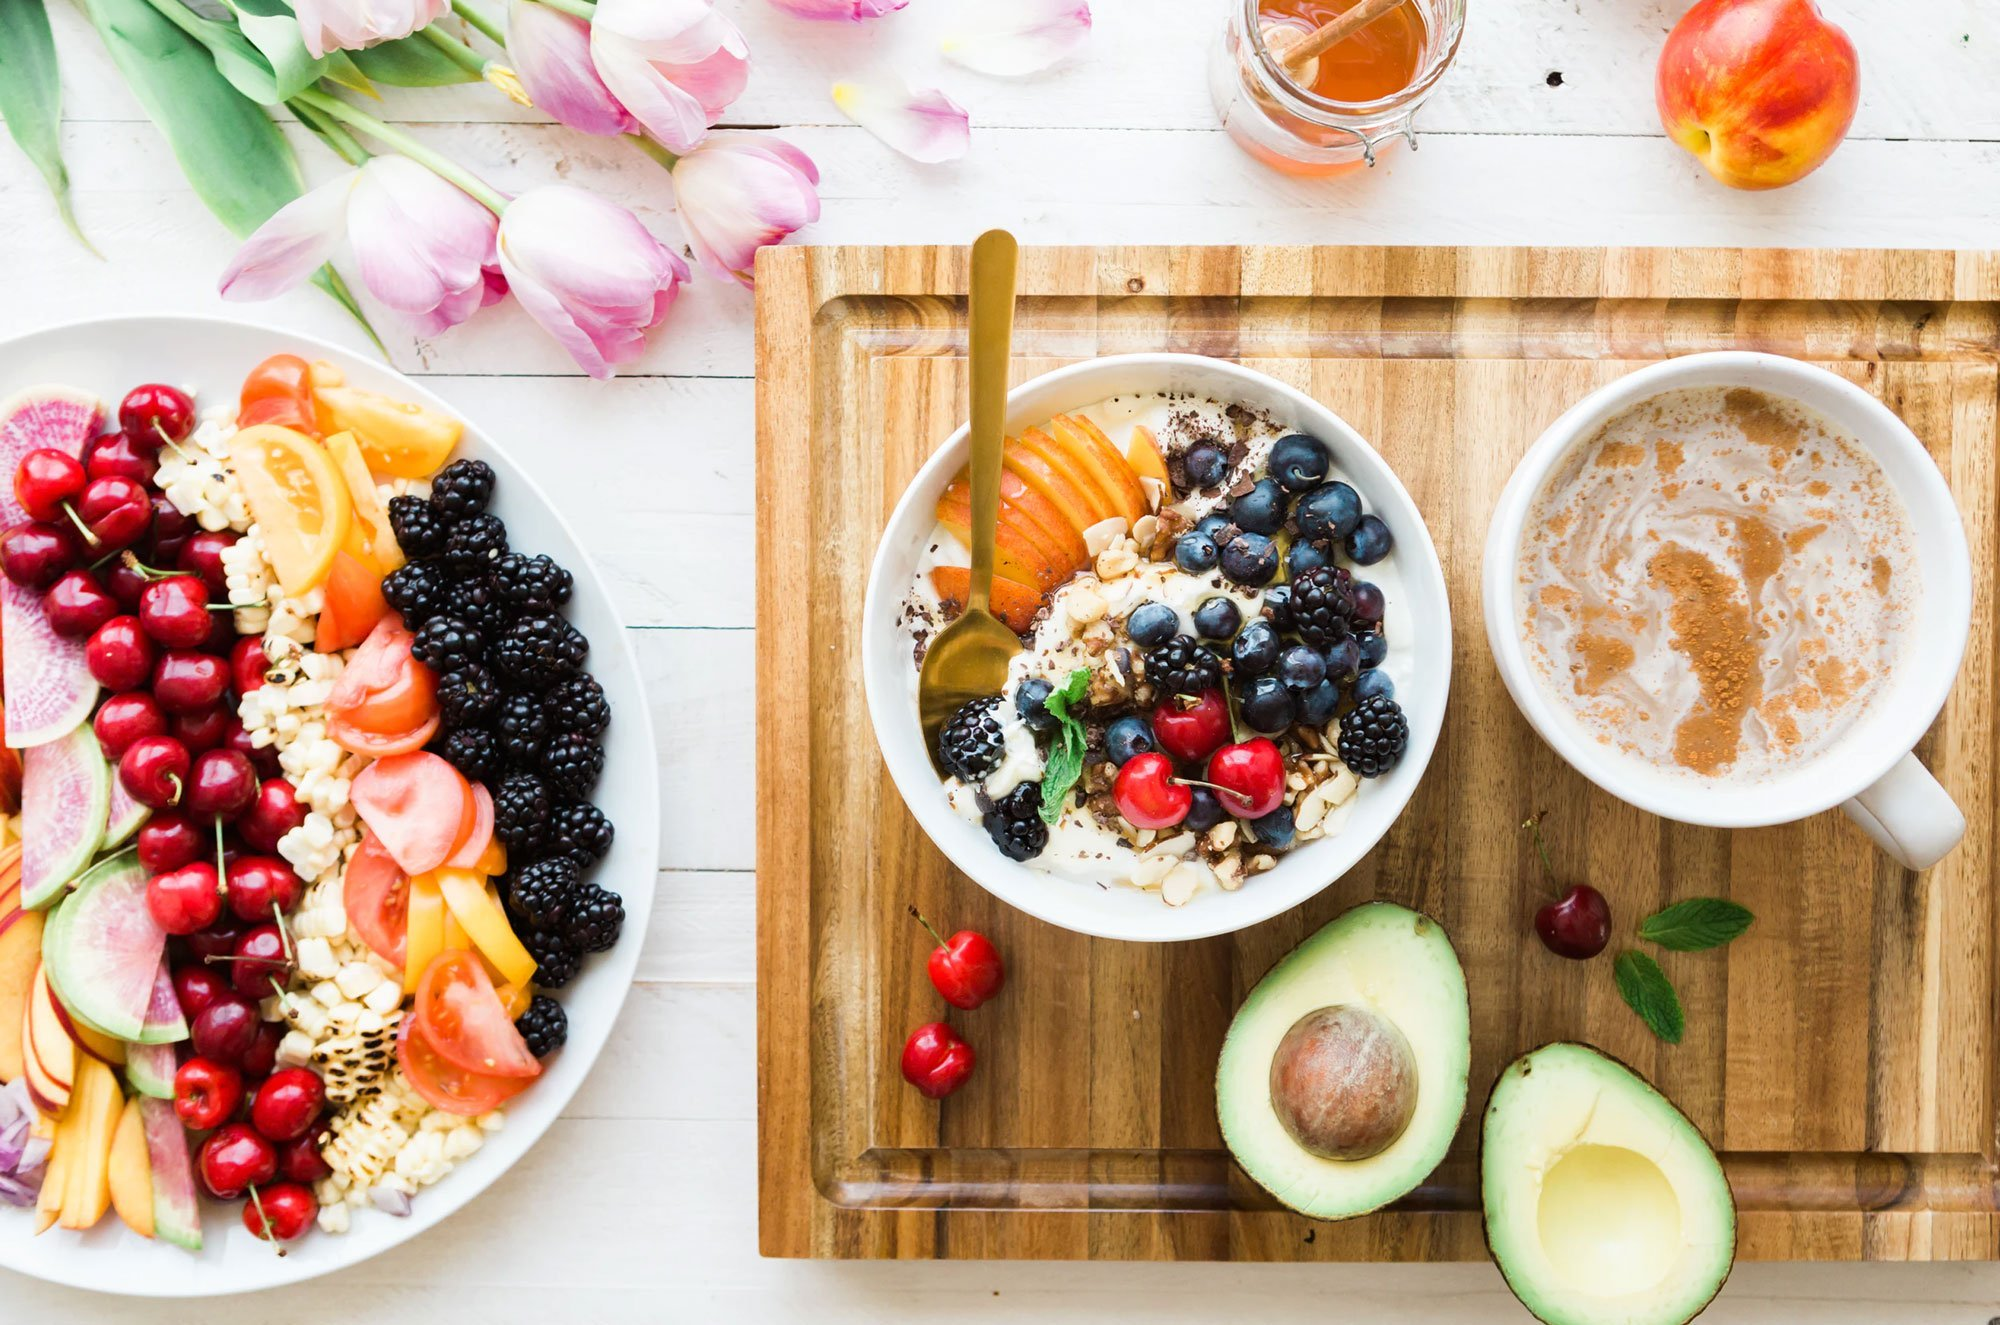 Breakfast cereal, fruit and flowers